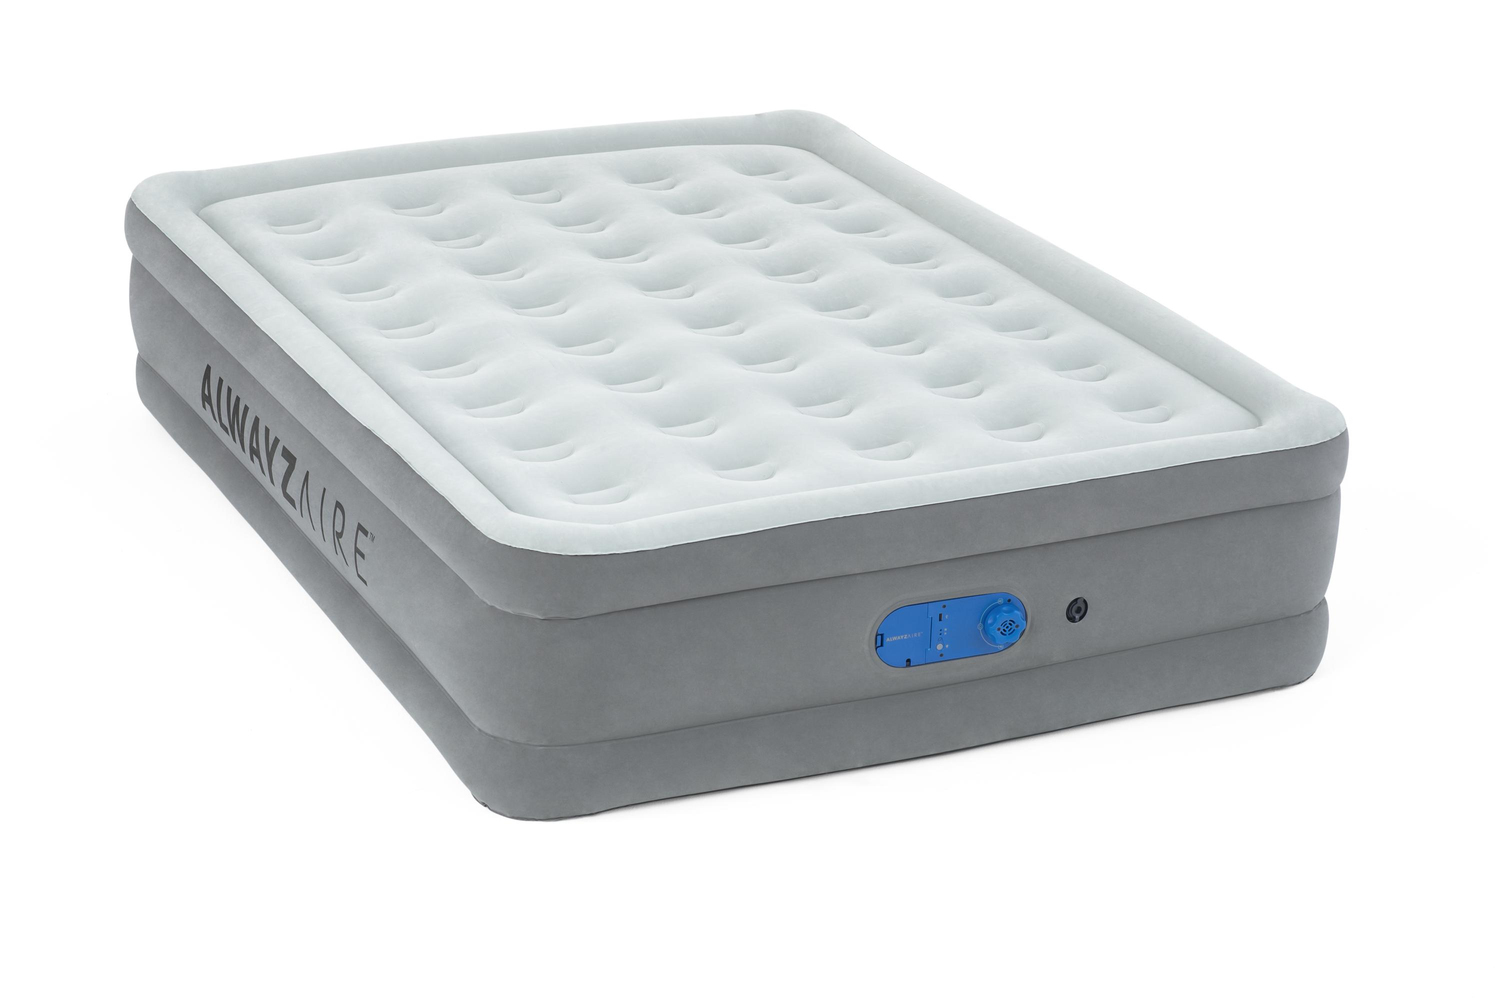 Bestway AlwayzAire Airbed Queen Built-in Dual Pump